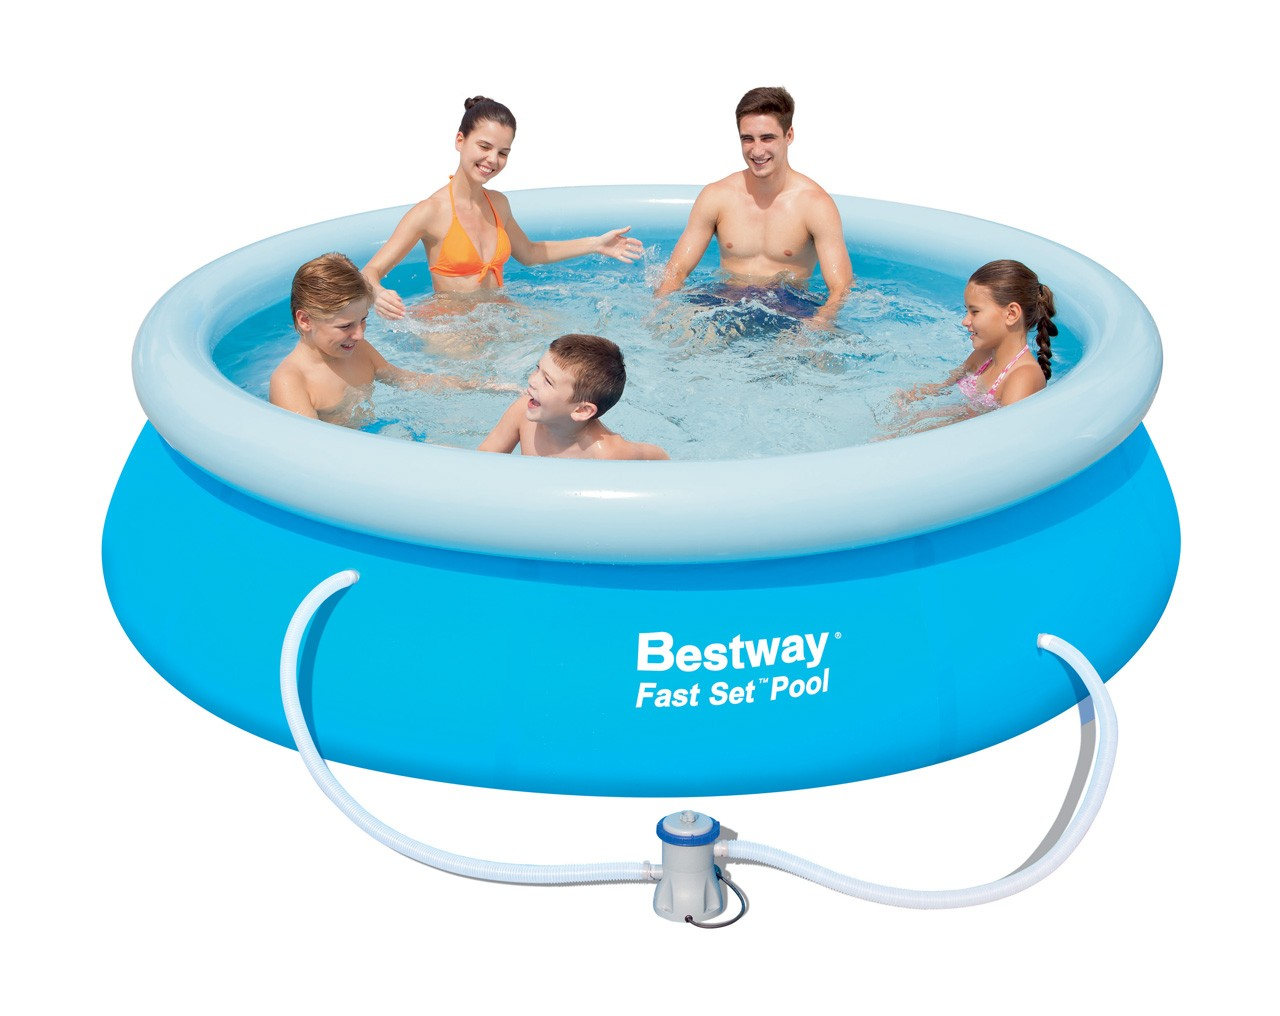 Bestway Pool Pumpe Zieht Luft Bestway Fast Set Pool 305x76cm M Filter Pumpe Tiny Butik